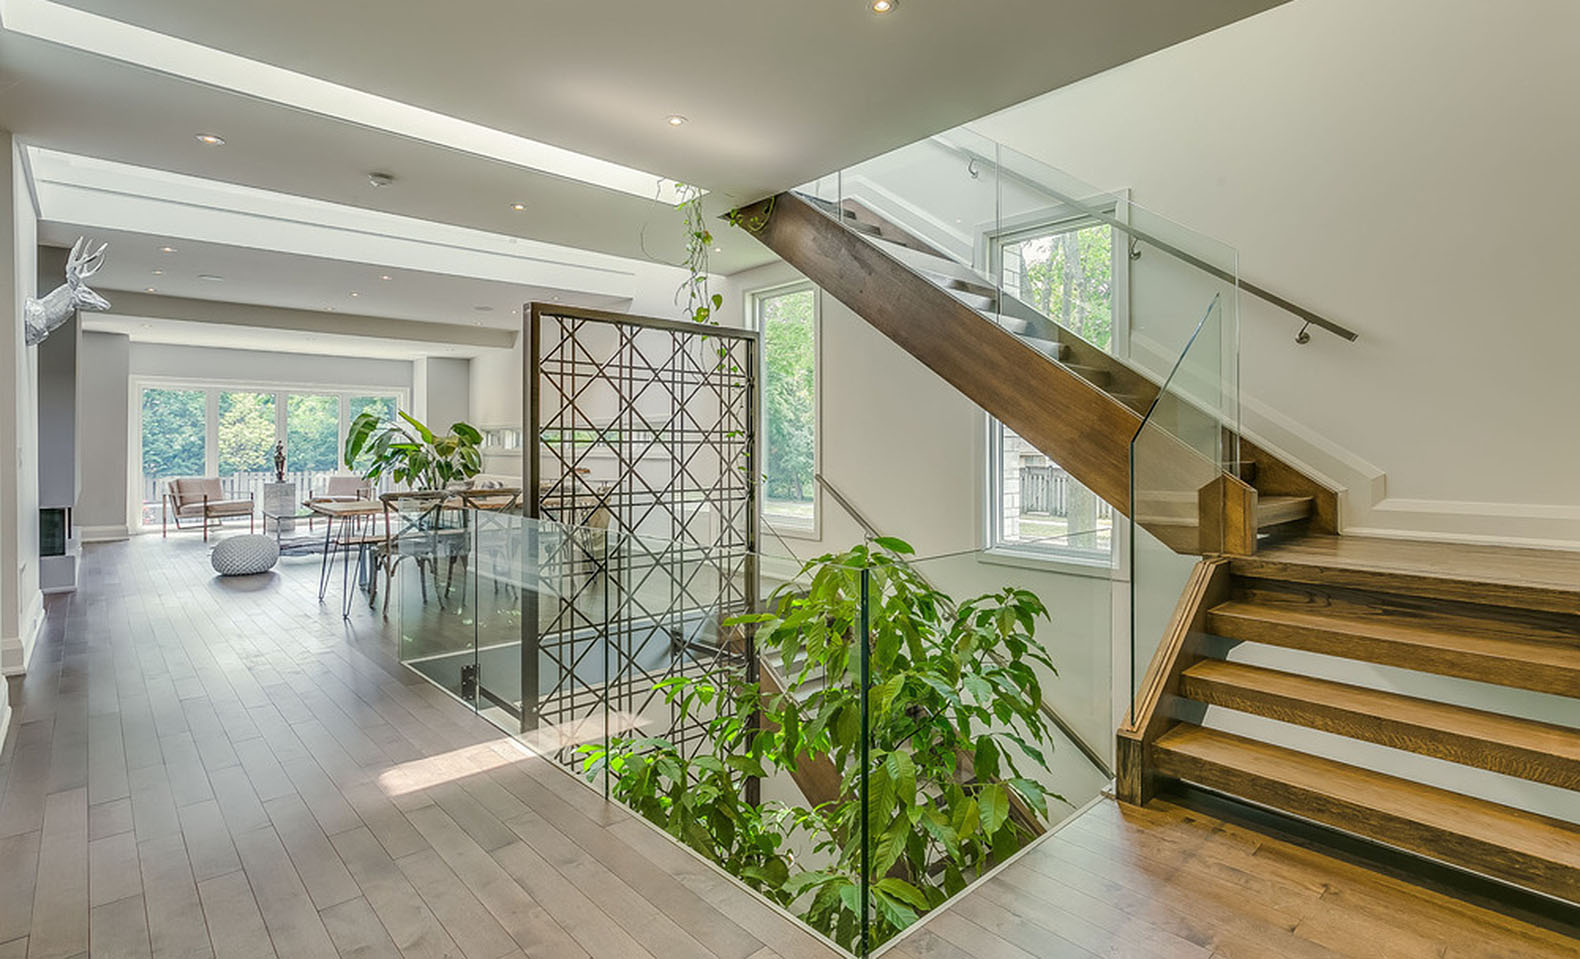 Naturally Cooled Toronto Home Boasts A Beautiful Multi Level Indoor Garden  Garden Void House By Alva Roy Architects U2013 Inhabitat   Green Design,  Innovation, ...